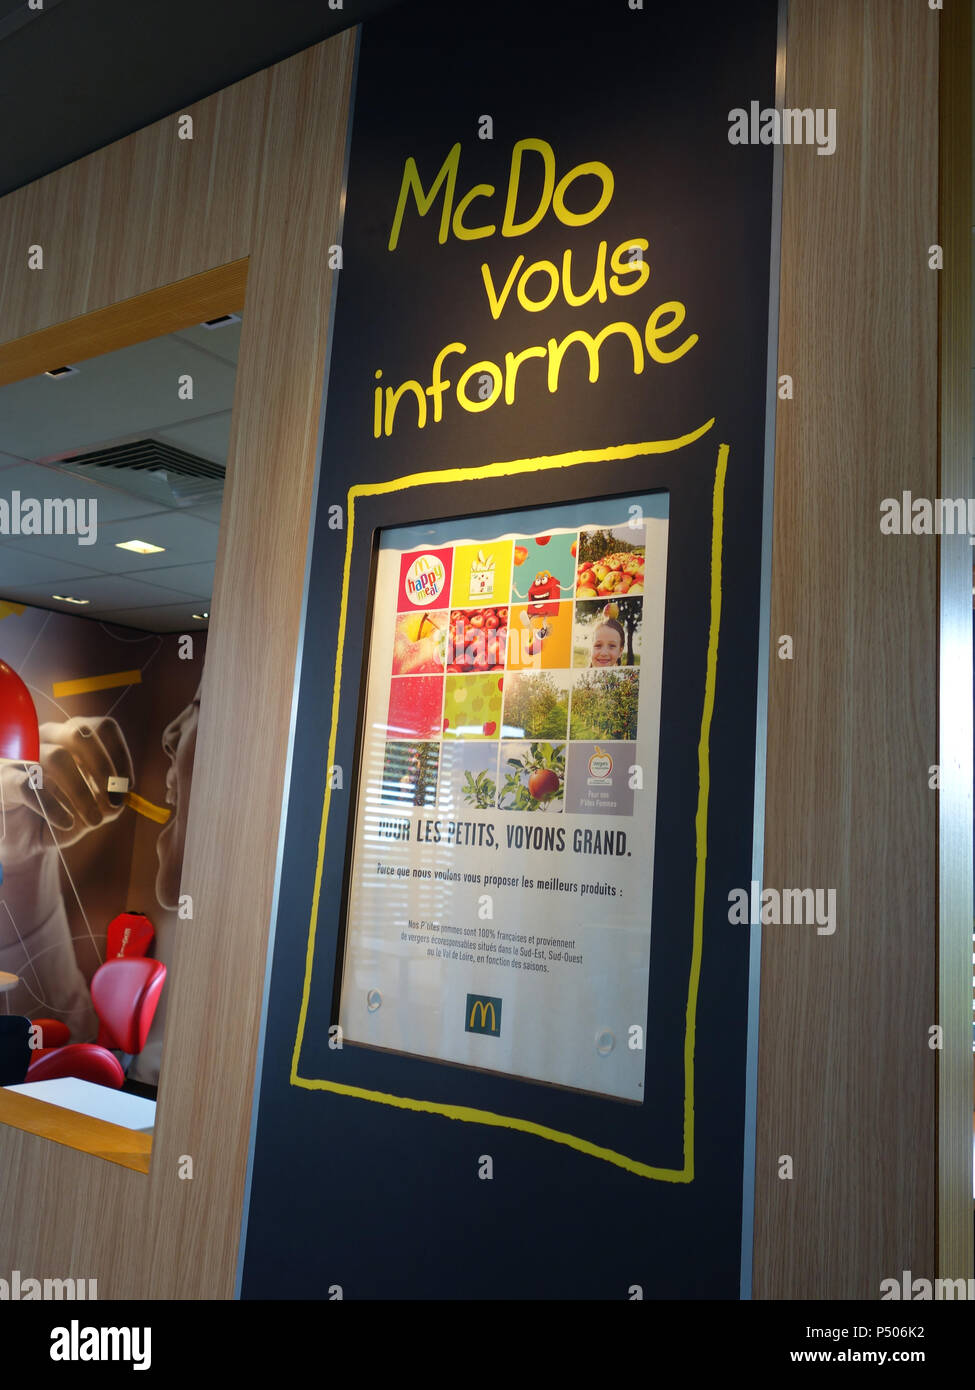 Information boards for the public customers at McDonald's Takeaway in Saint-Étienne-du-Rouvray, France - Stock Image